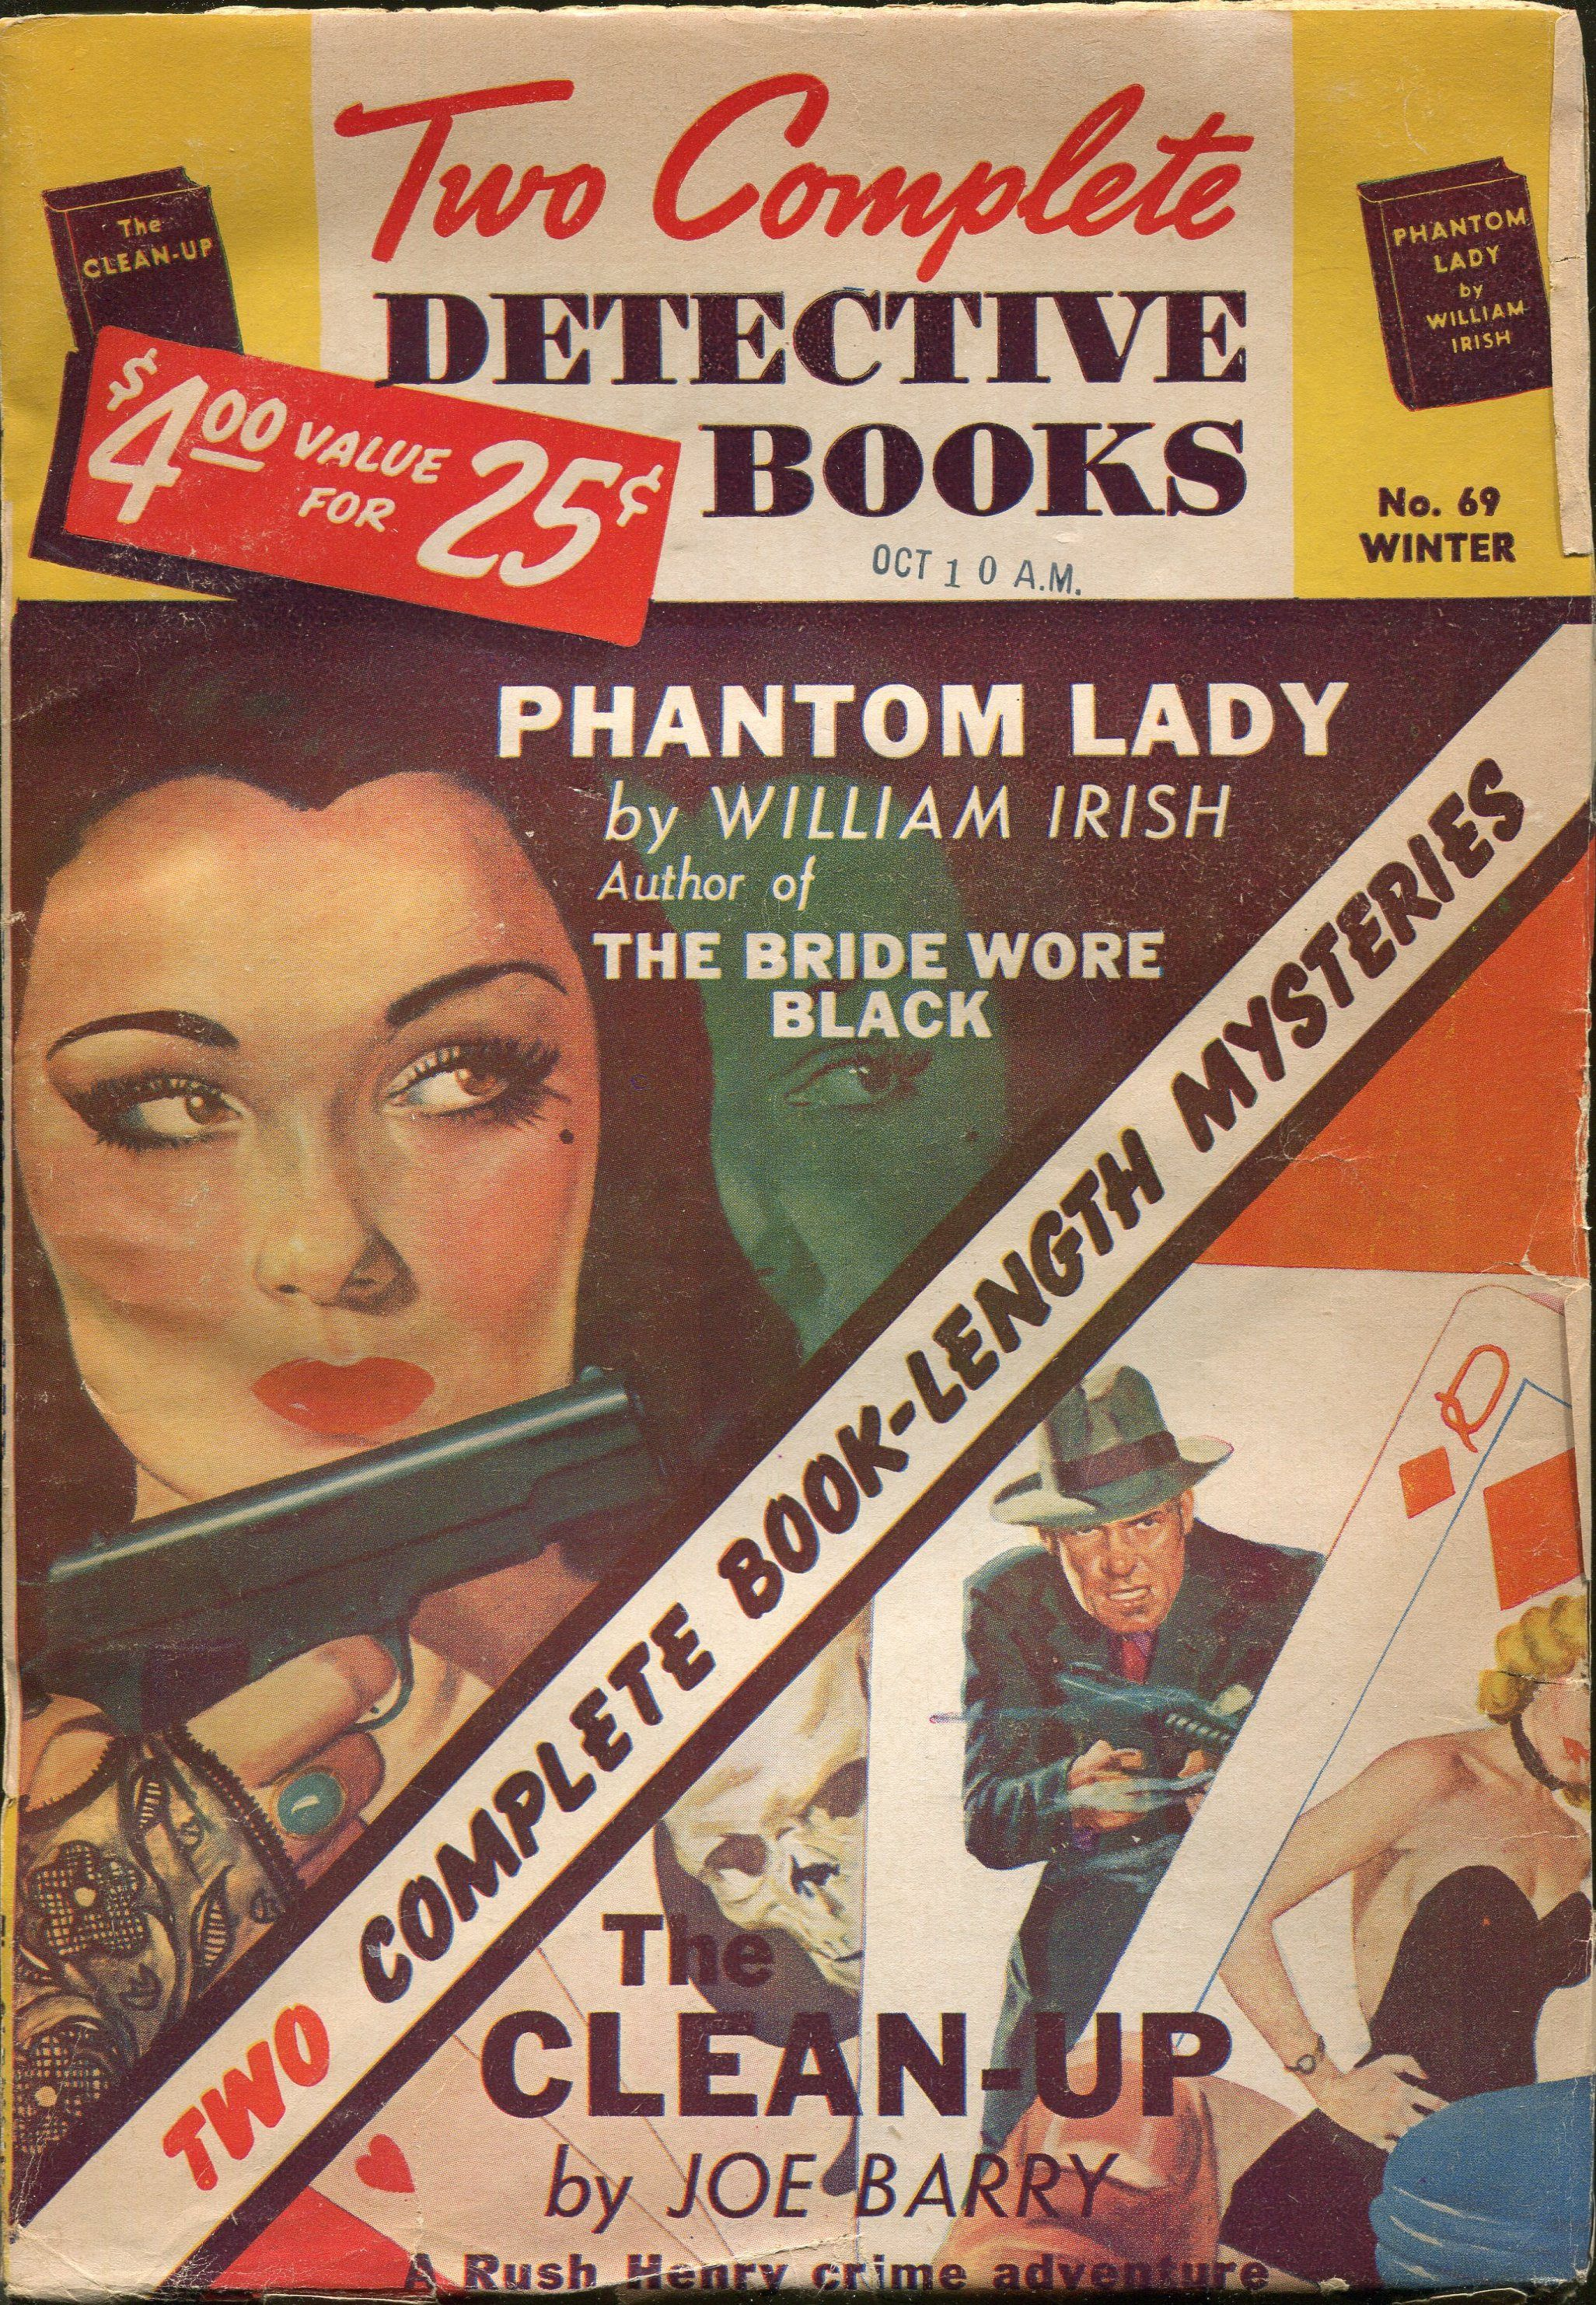 Two-Complete-Detective-Books-Winter-1951.jpg (2053×2965)